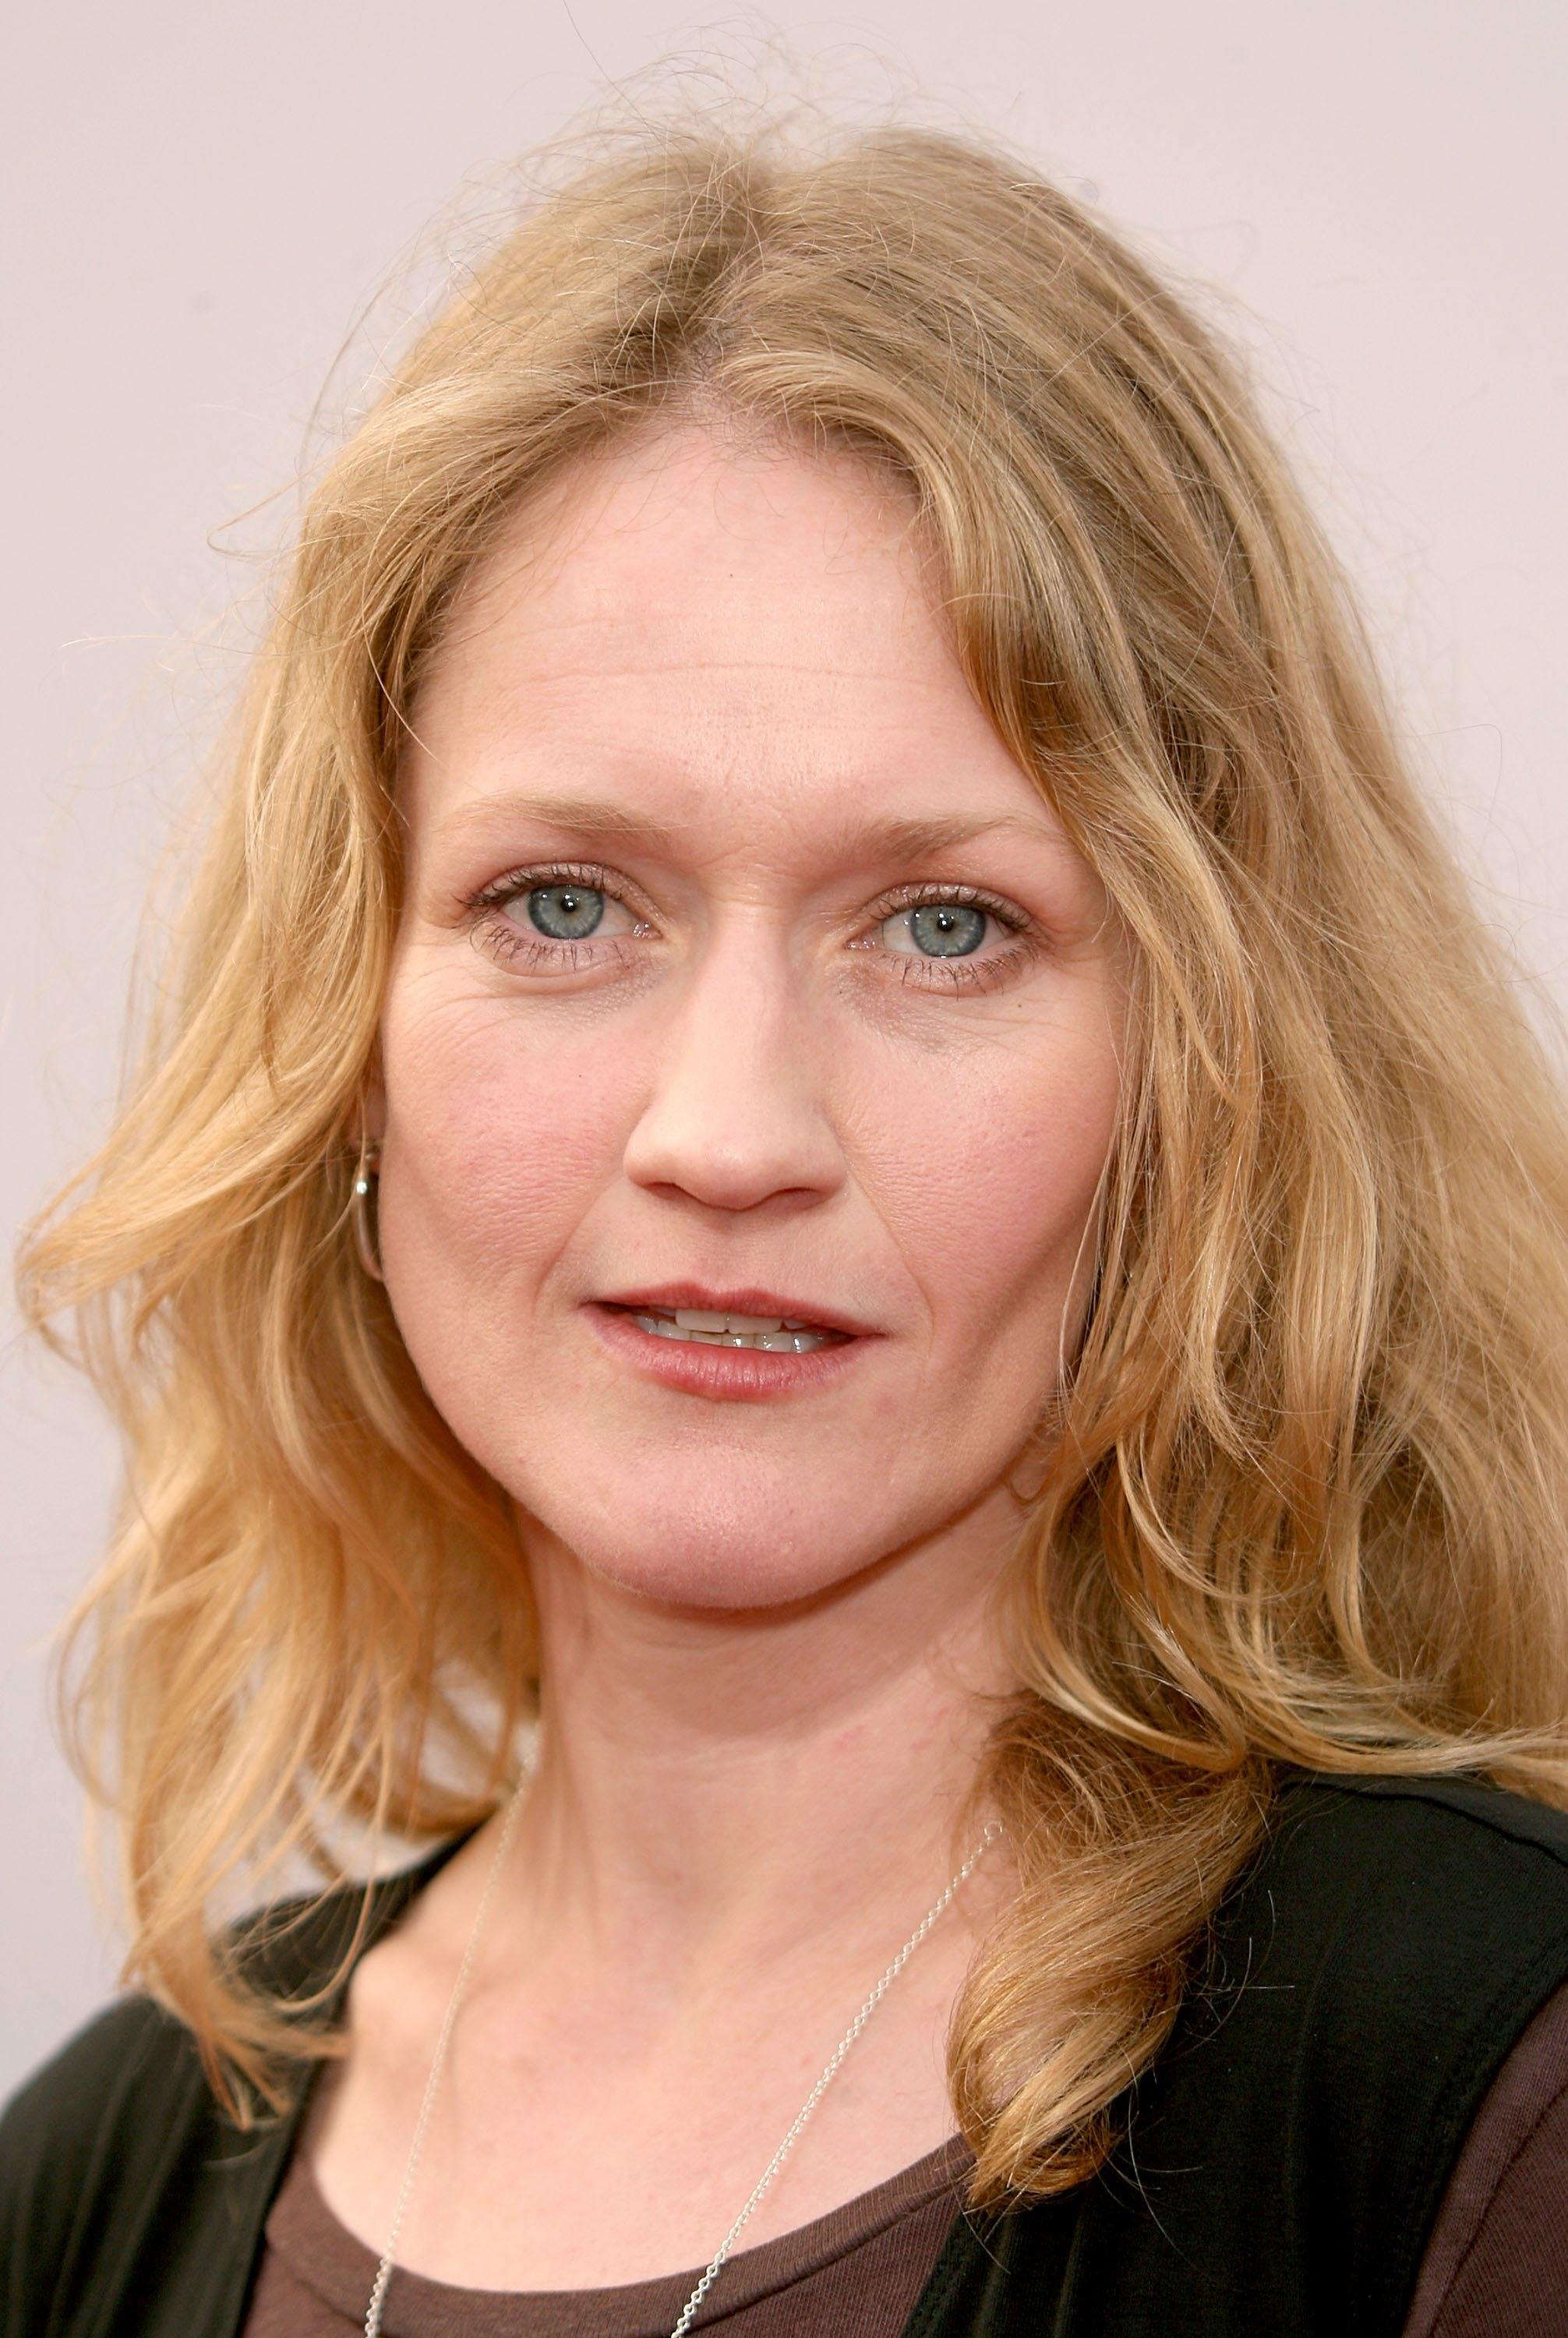 Actress Paula Malcomson arrives at the 34th AFI Life Achievement Award tribute to Sir Sean Connery held at the Kodak Theatre on June 8, 2006 in Hollywood, California.